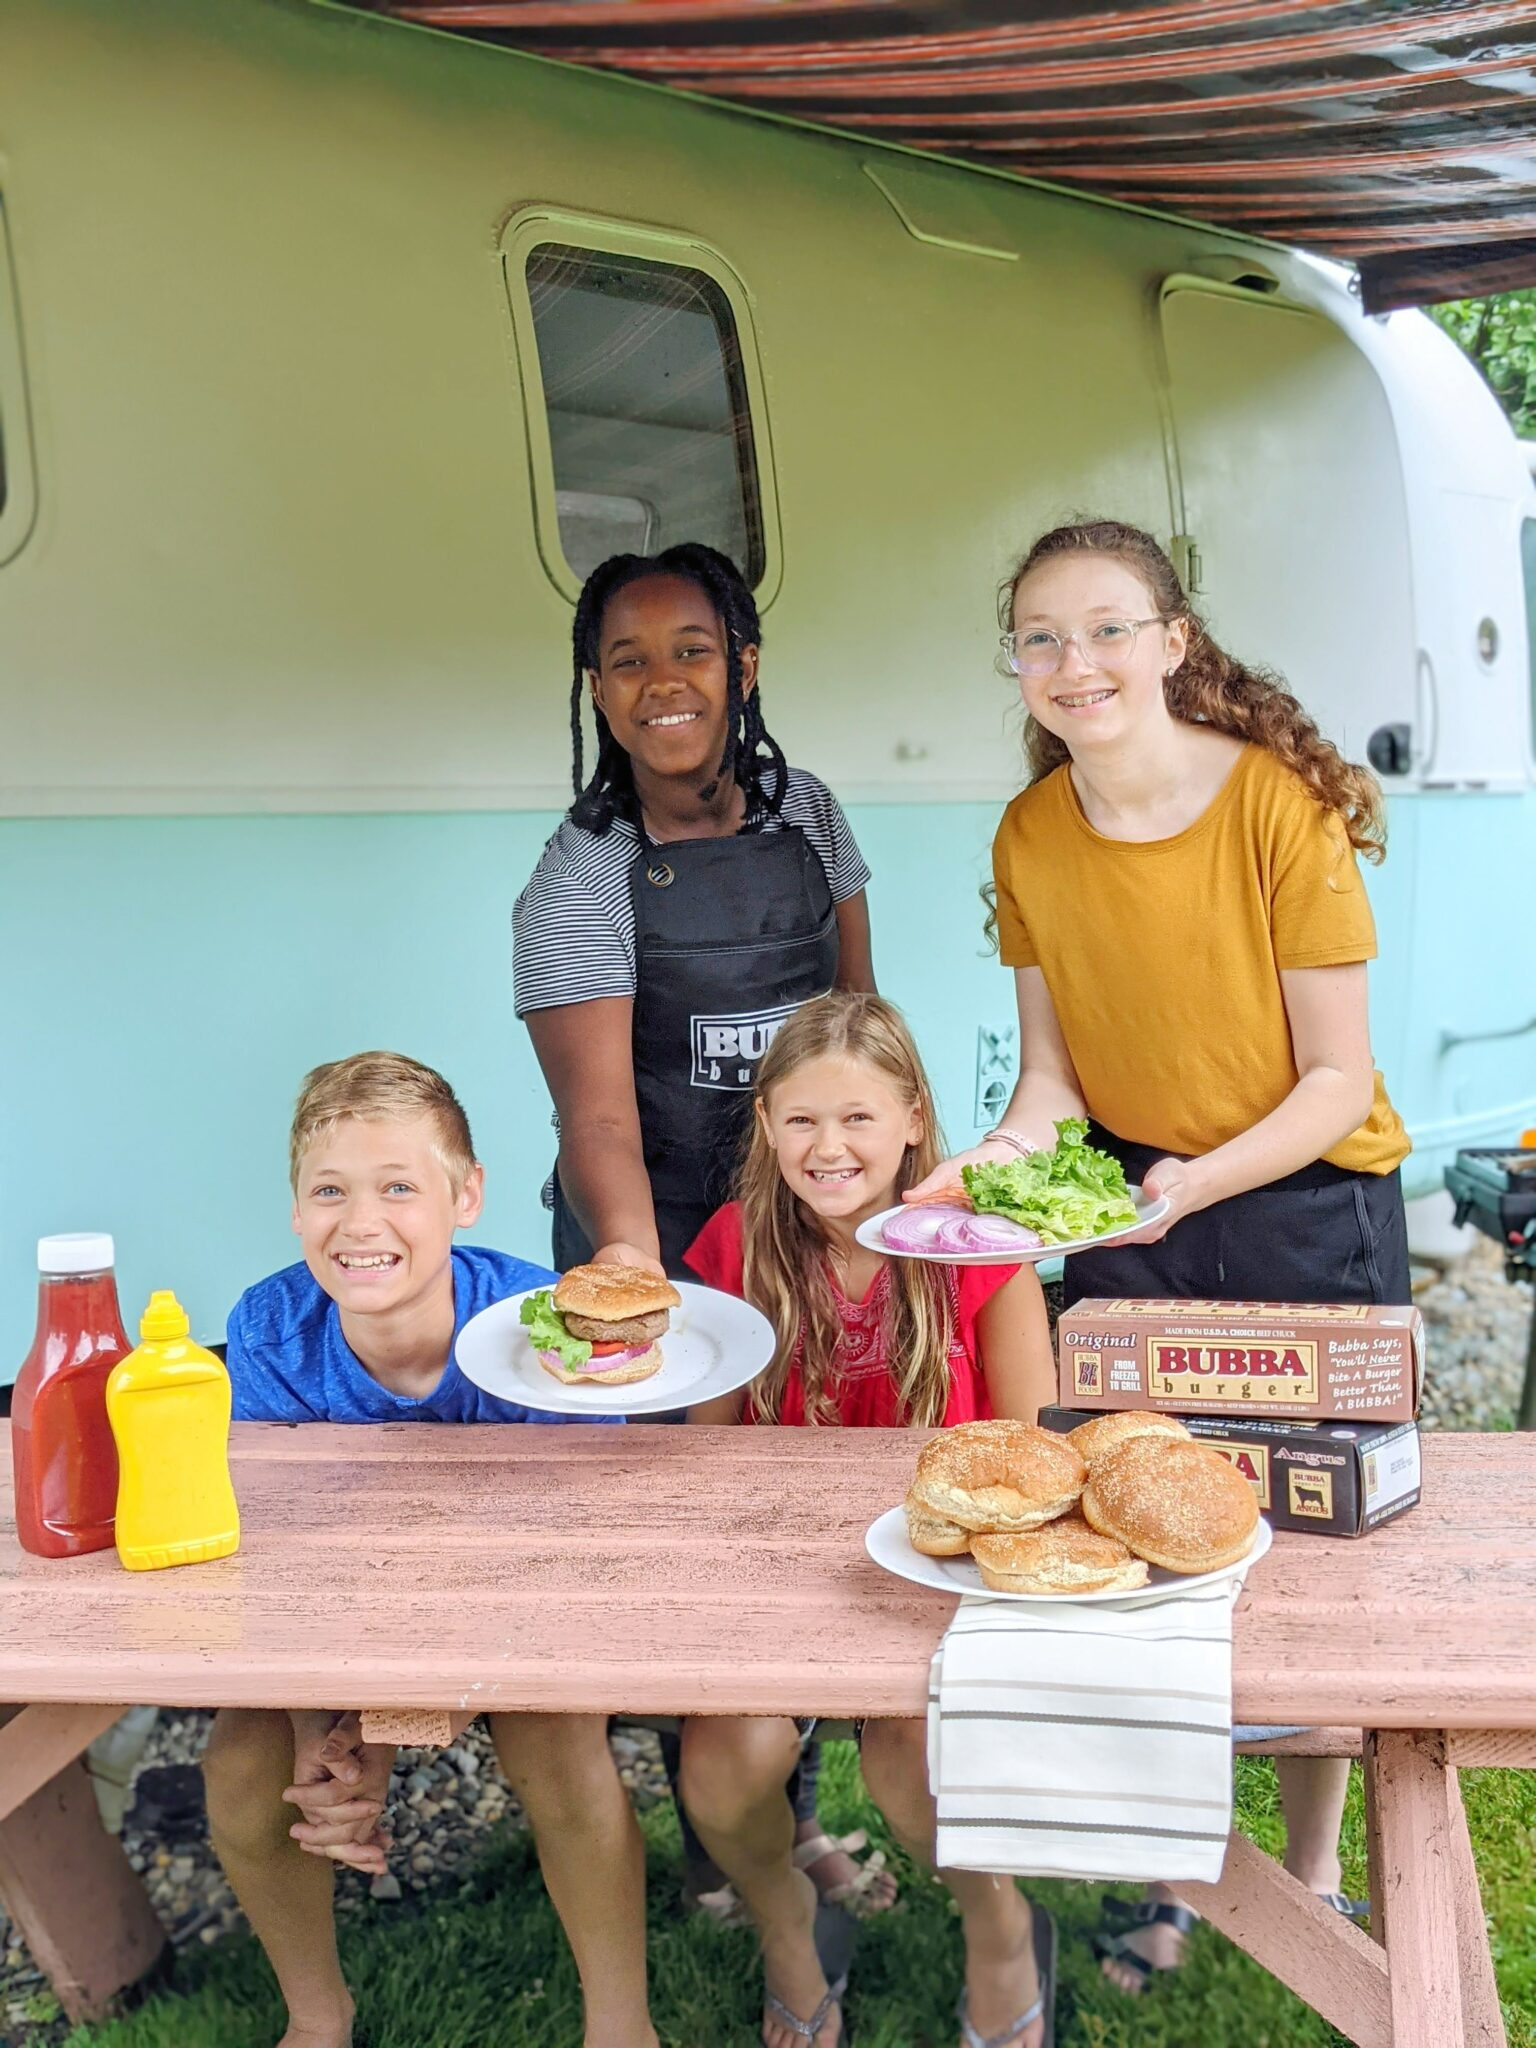 My Favorite Camping Meal Hacks with BUBBA Burger All Things with Purpose Sarah Lemp 16